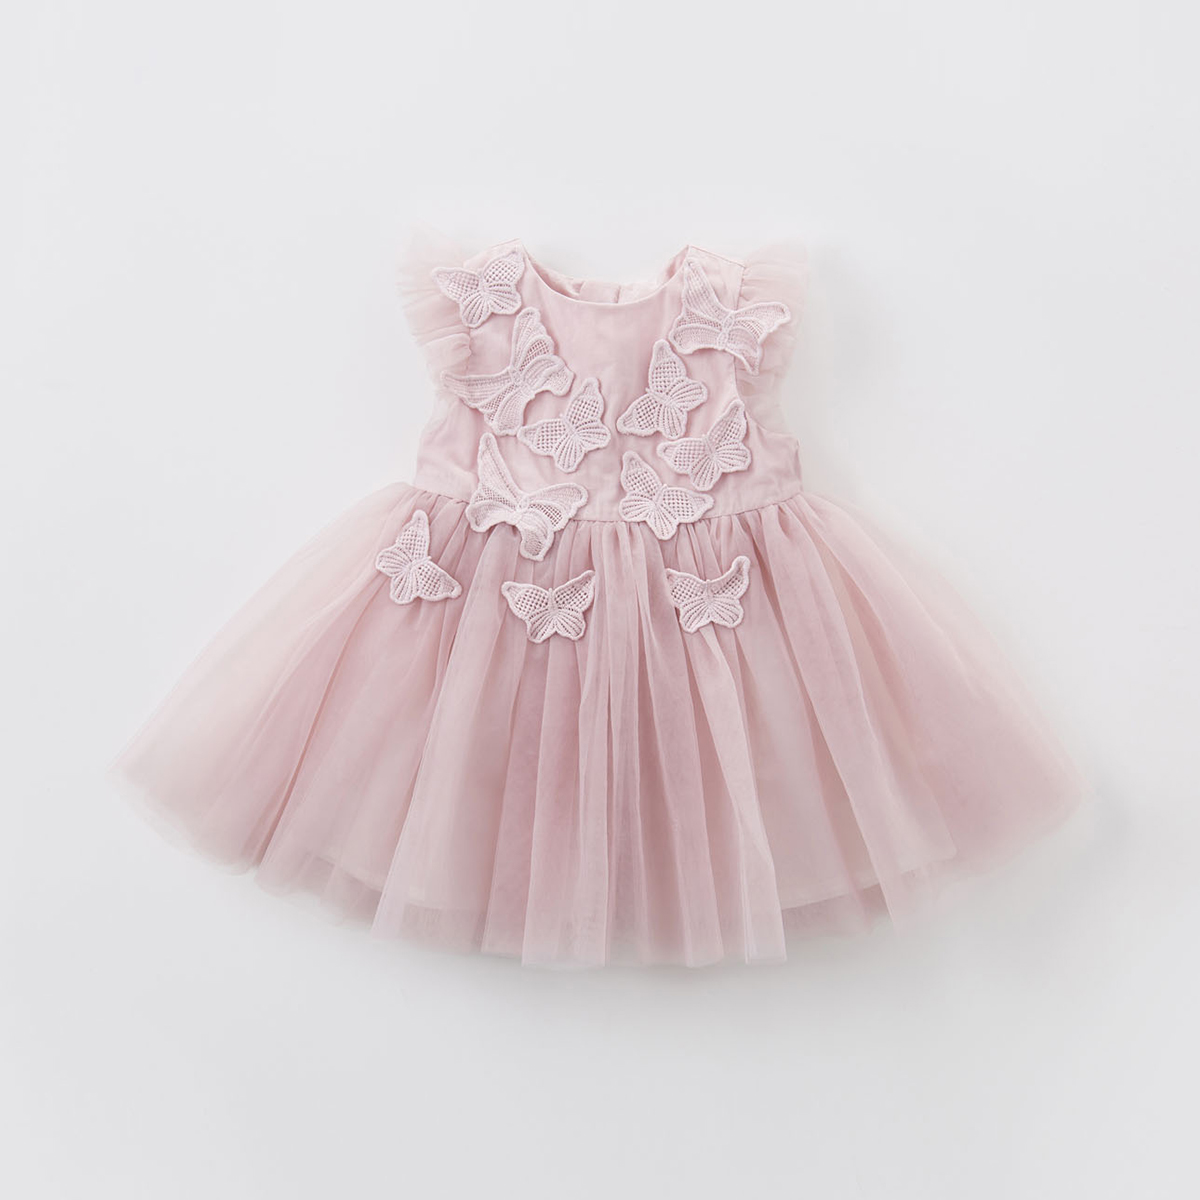 Davebella new summer girls' dress children's mesh dress princess dress children's dress